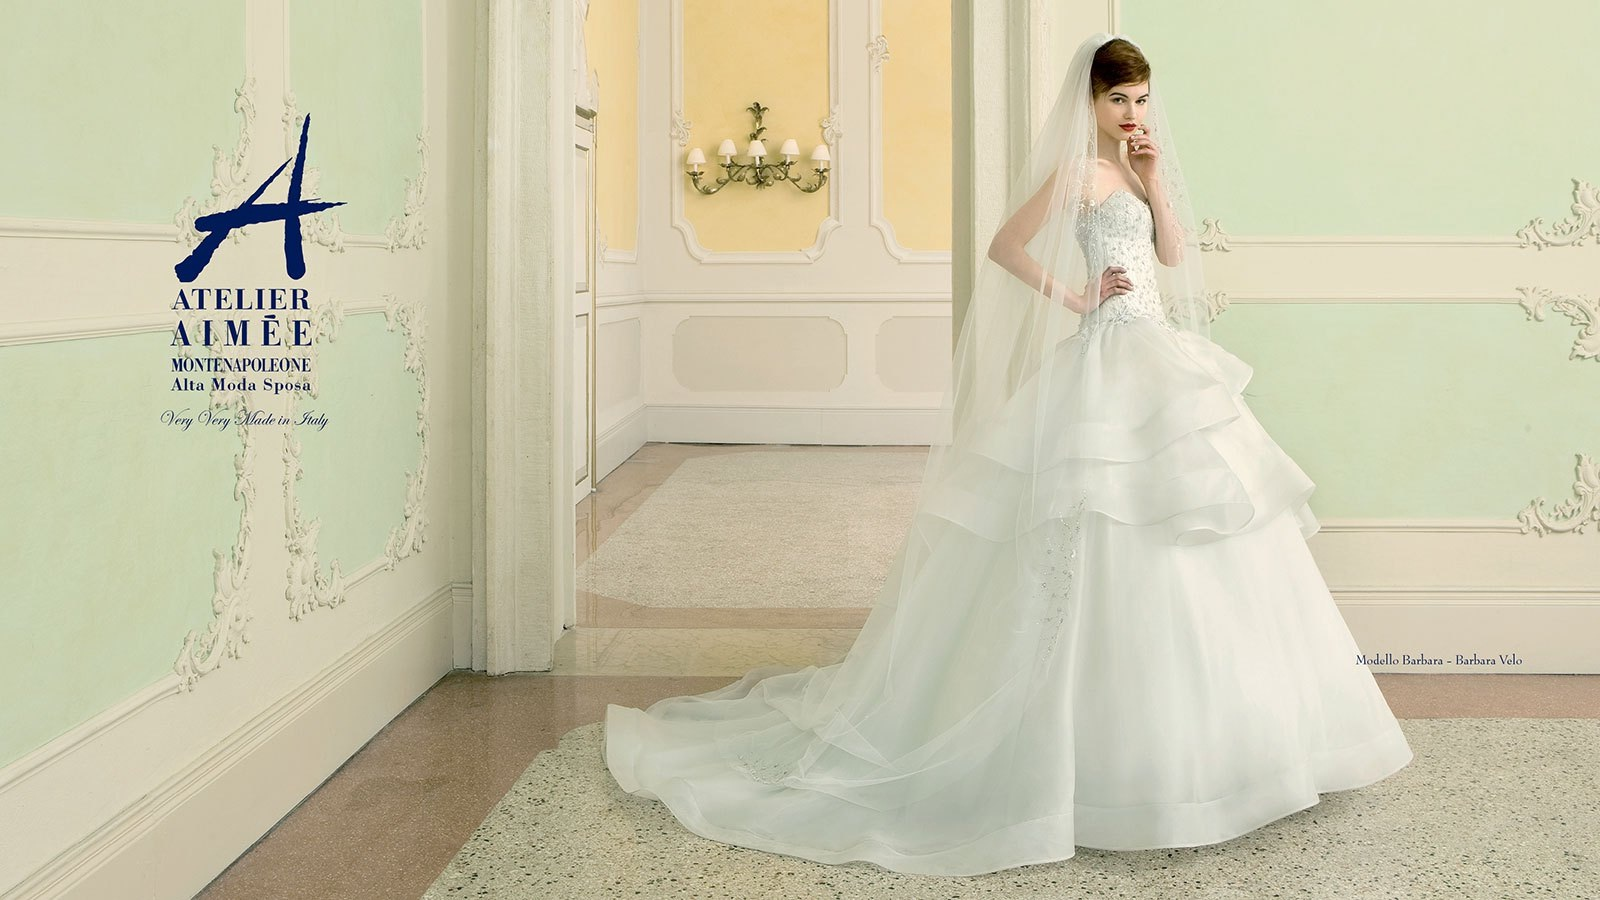 Atelier Aimee Spring 2014 Collection